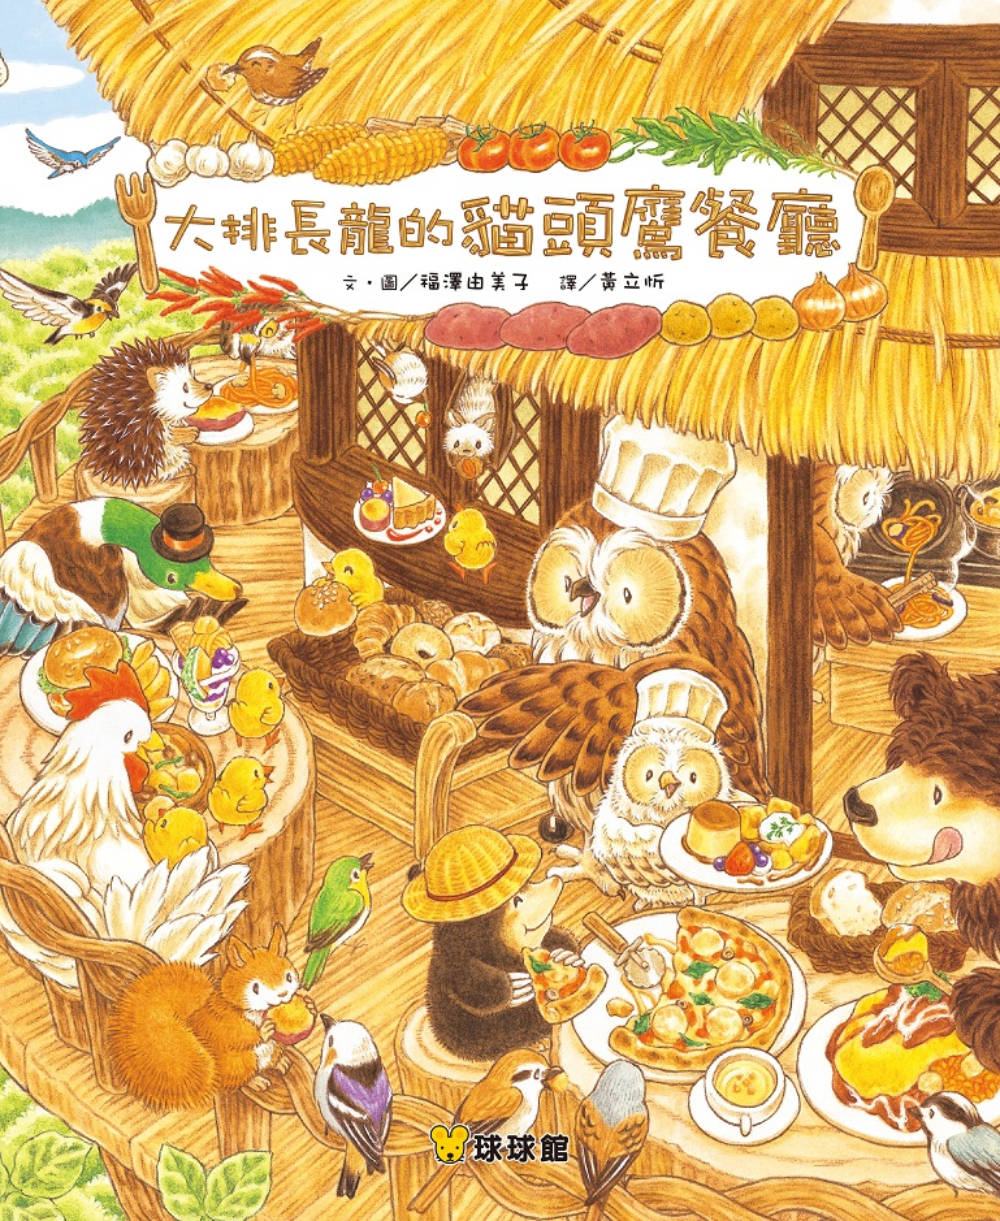 The Long Queue at Owl's Restaurant • 大排長龍的貓頭鷹餐廳 (new)